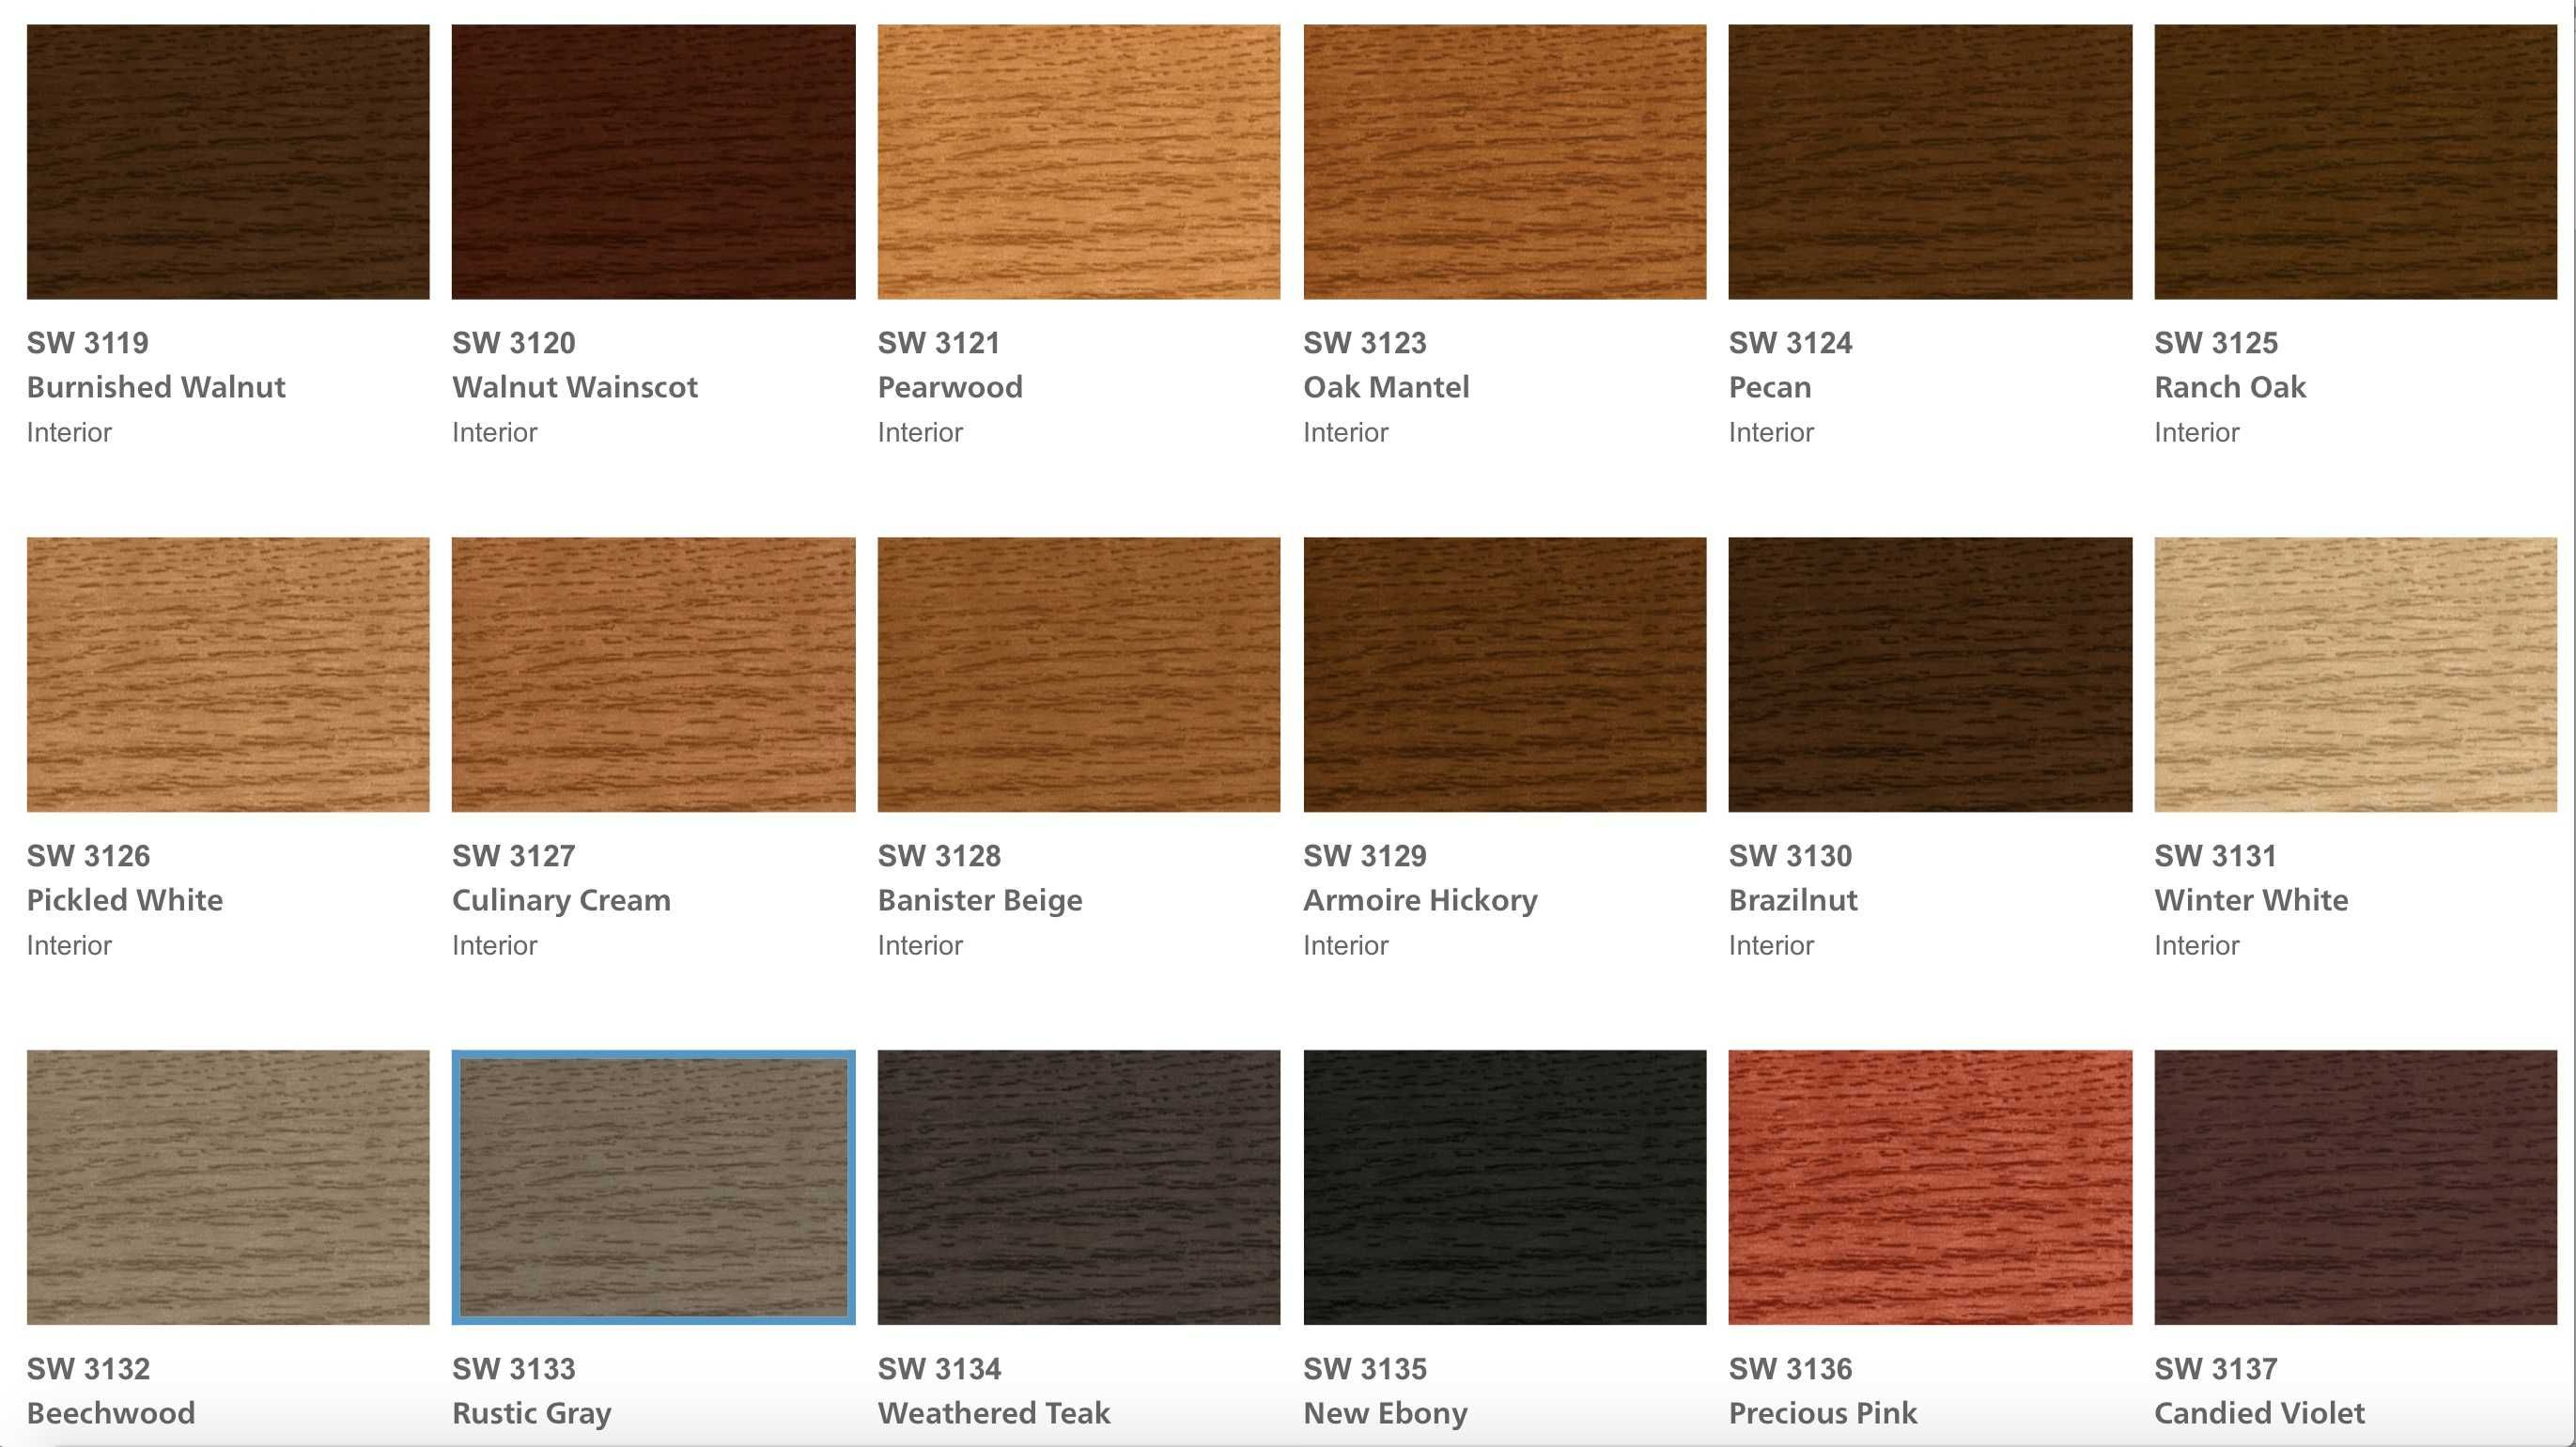 Wordpress Error Sherwin Williams Stain Colors Sherwin Williams Stain Staining Deck